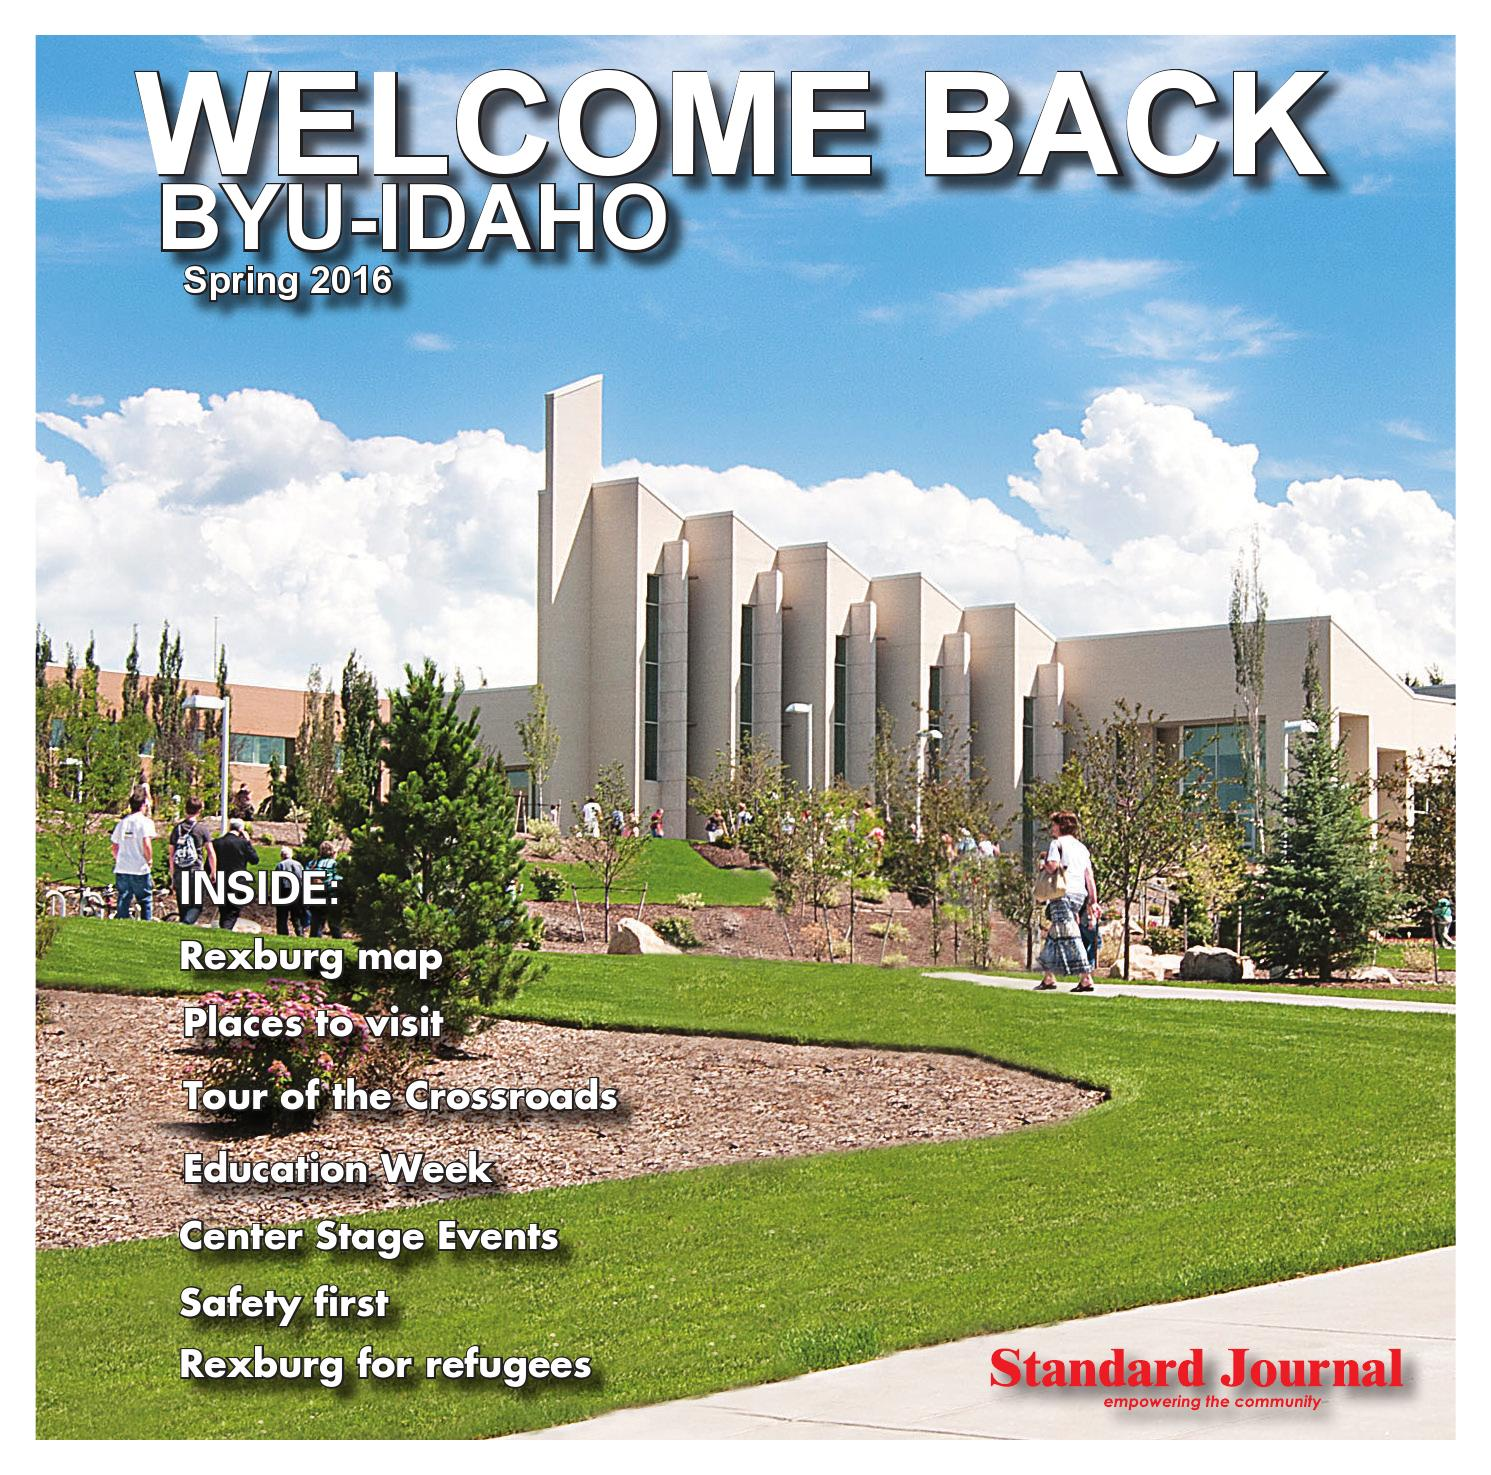 Welcome Back BYU-Idaho Spring 2016 by Standard Journal - issuu